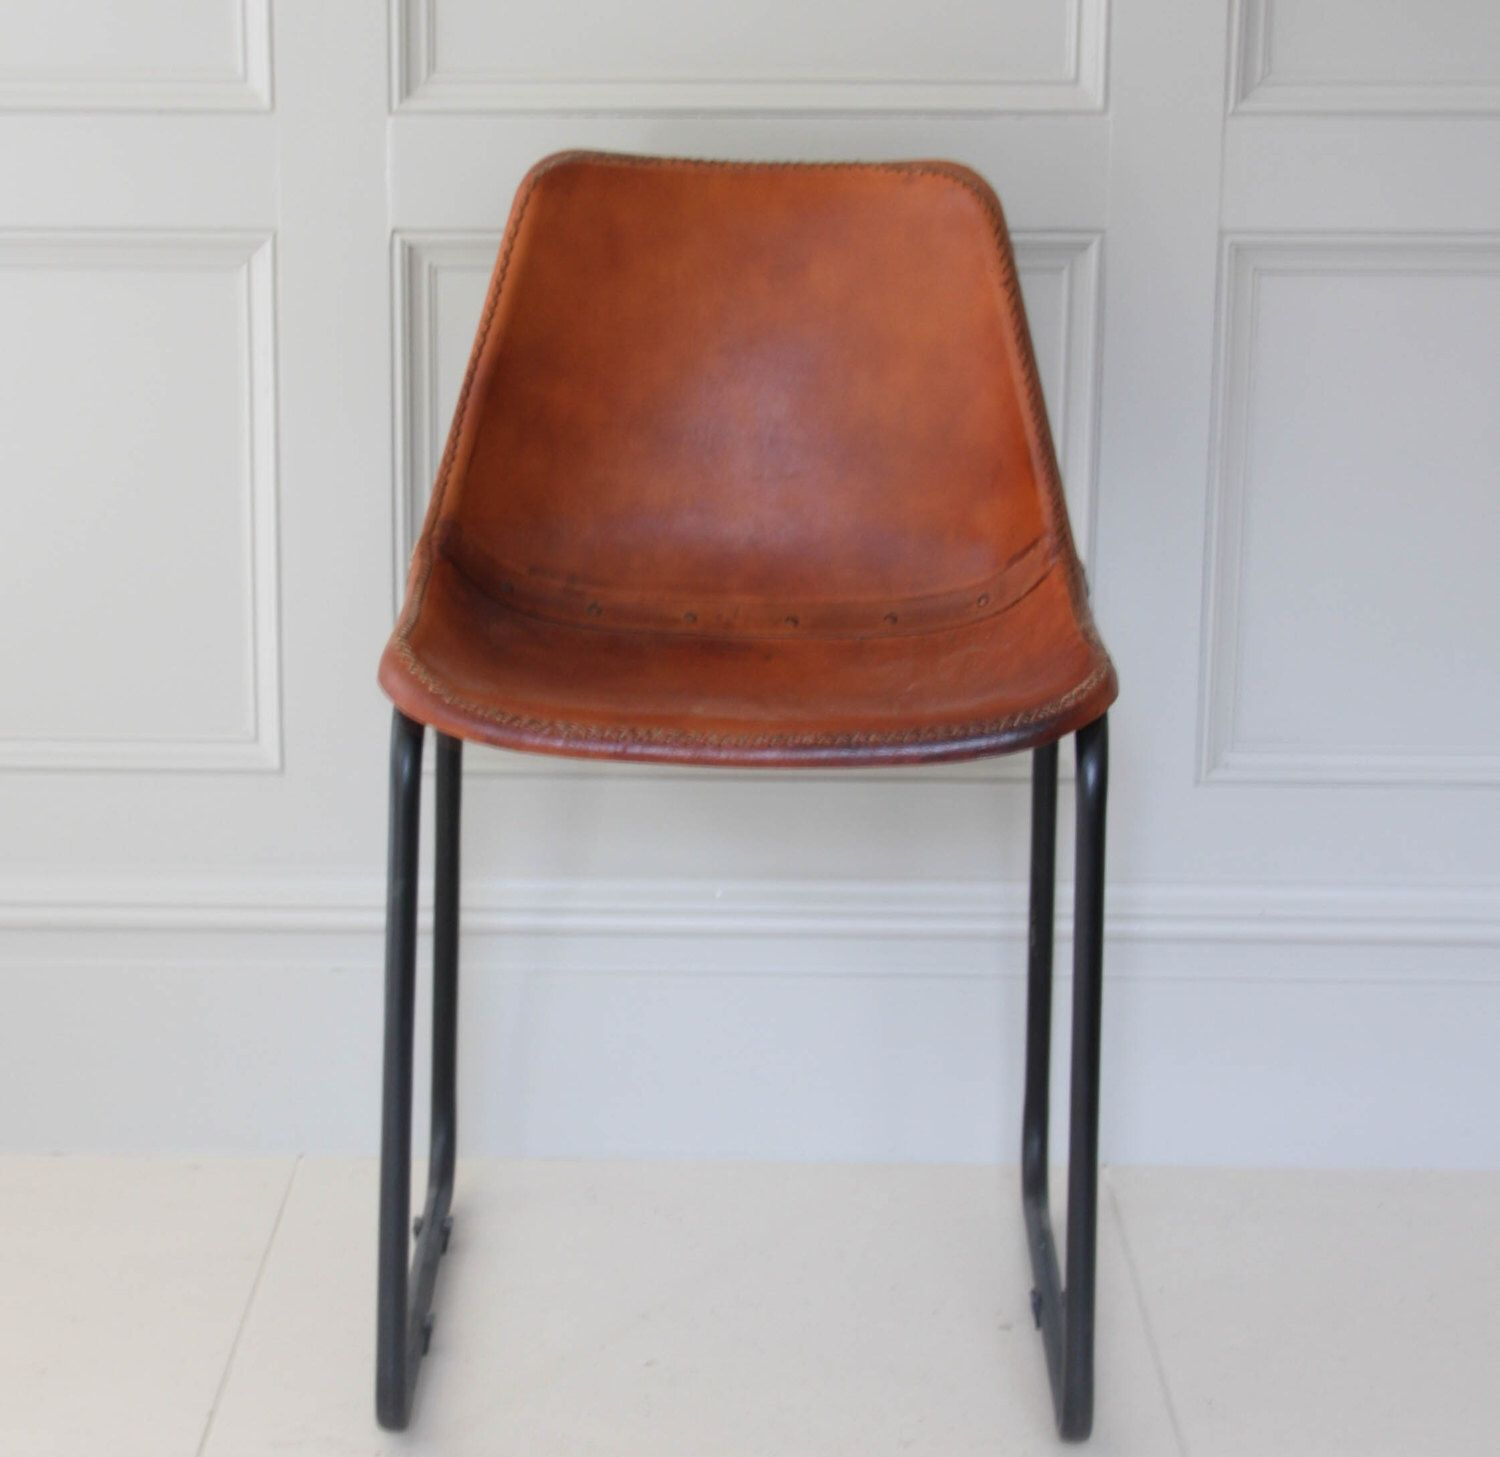 Road House Tan Leather Industrial Dining Restaurant Cafe Etsy Tanned Leather Dining Chairs Saddle Chair Chair